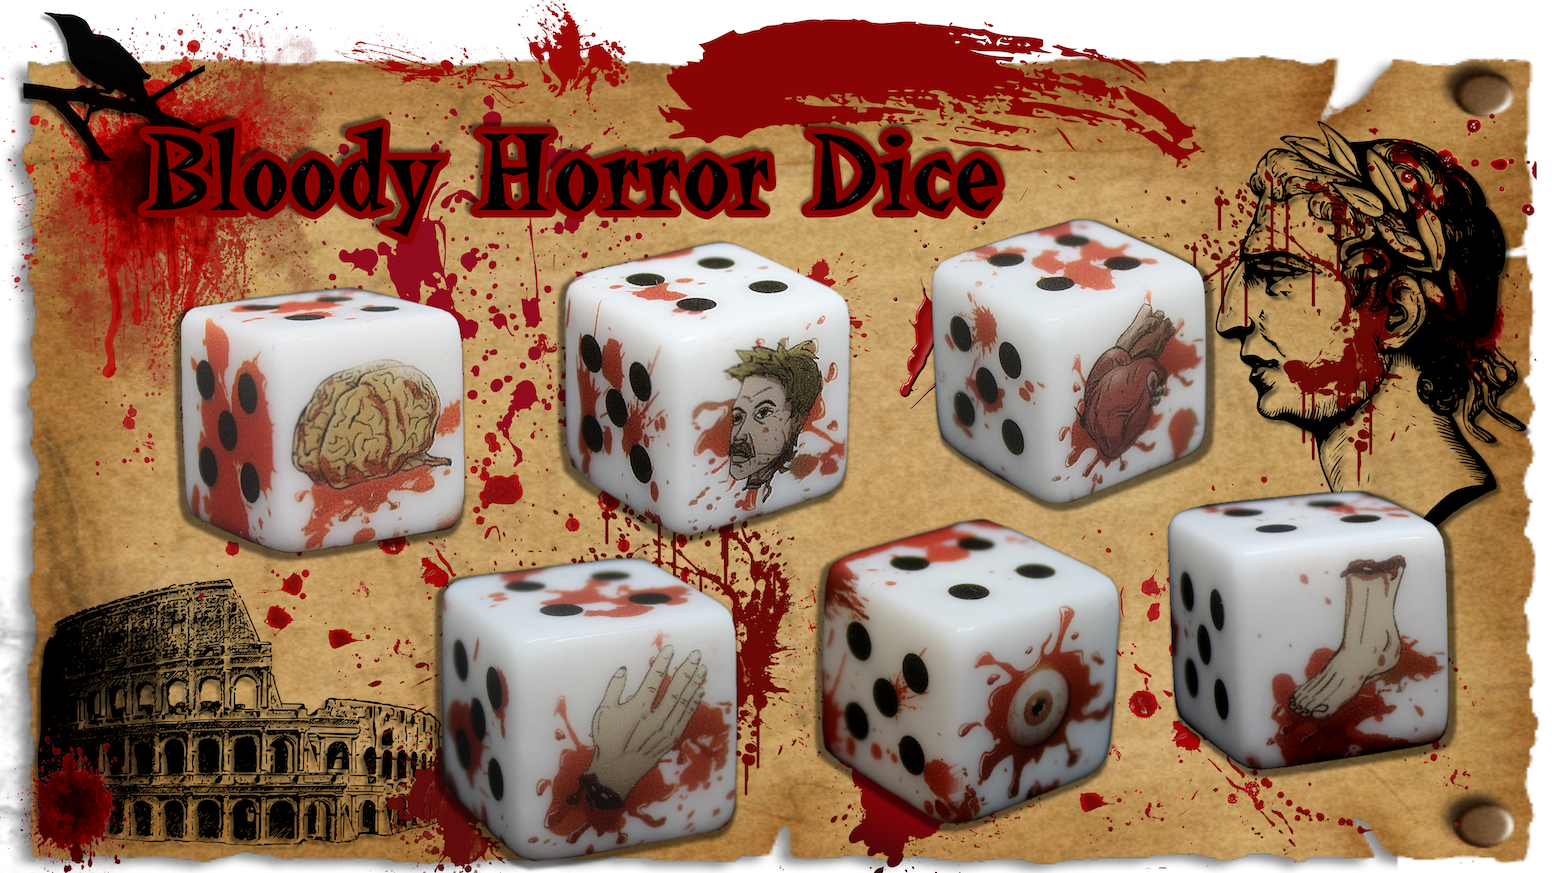 Novelty dice covered in blood and body parts! For Dungeons and Dragons, tabletop, wargaming, board games,collections, zombies and more!